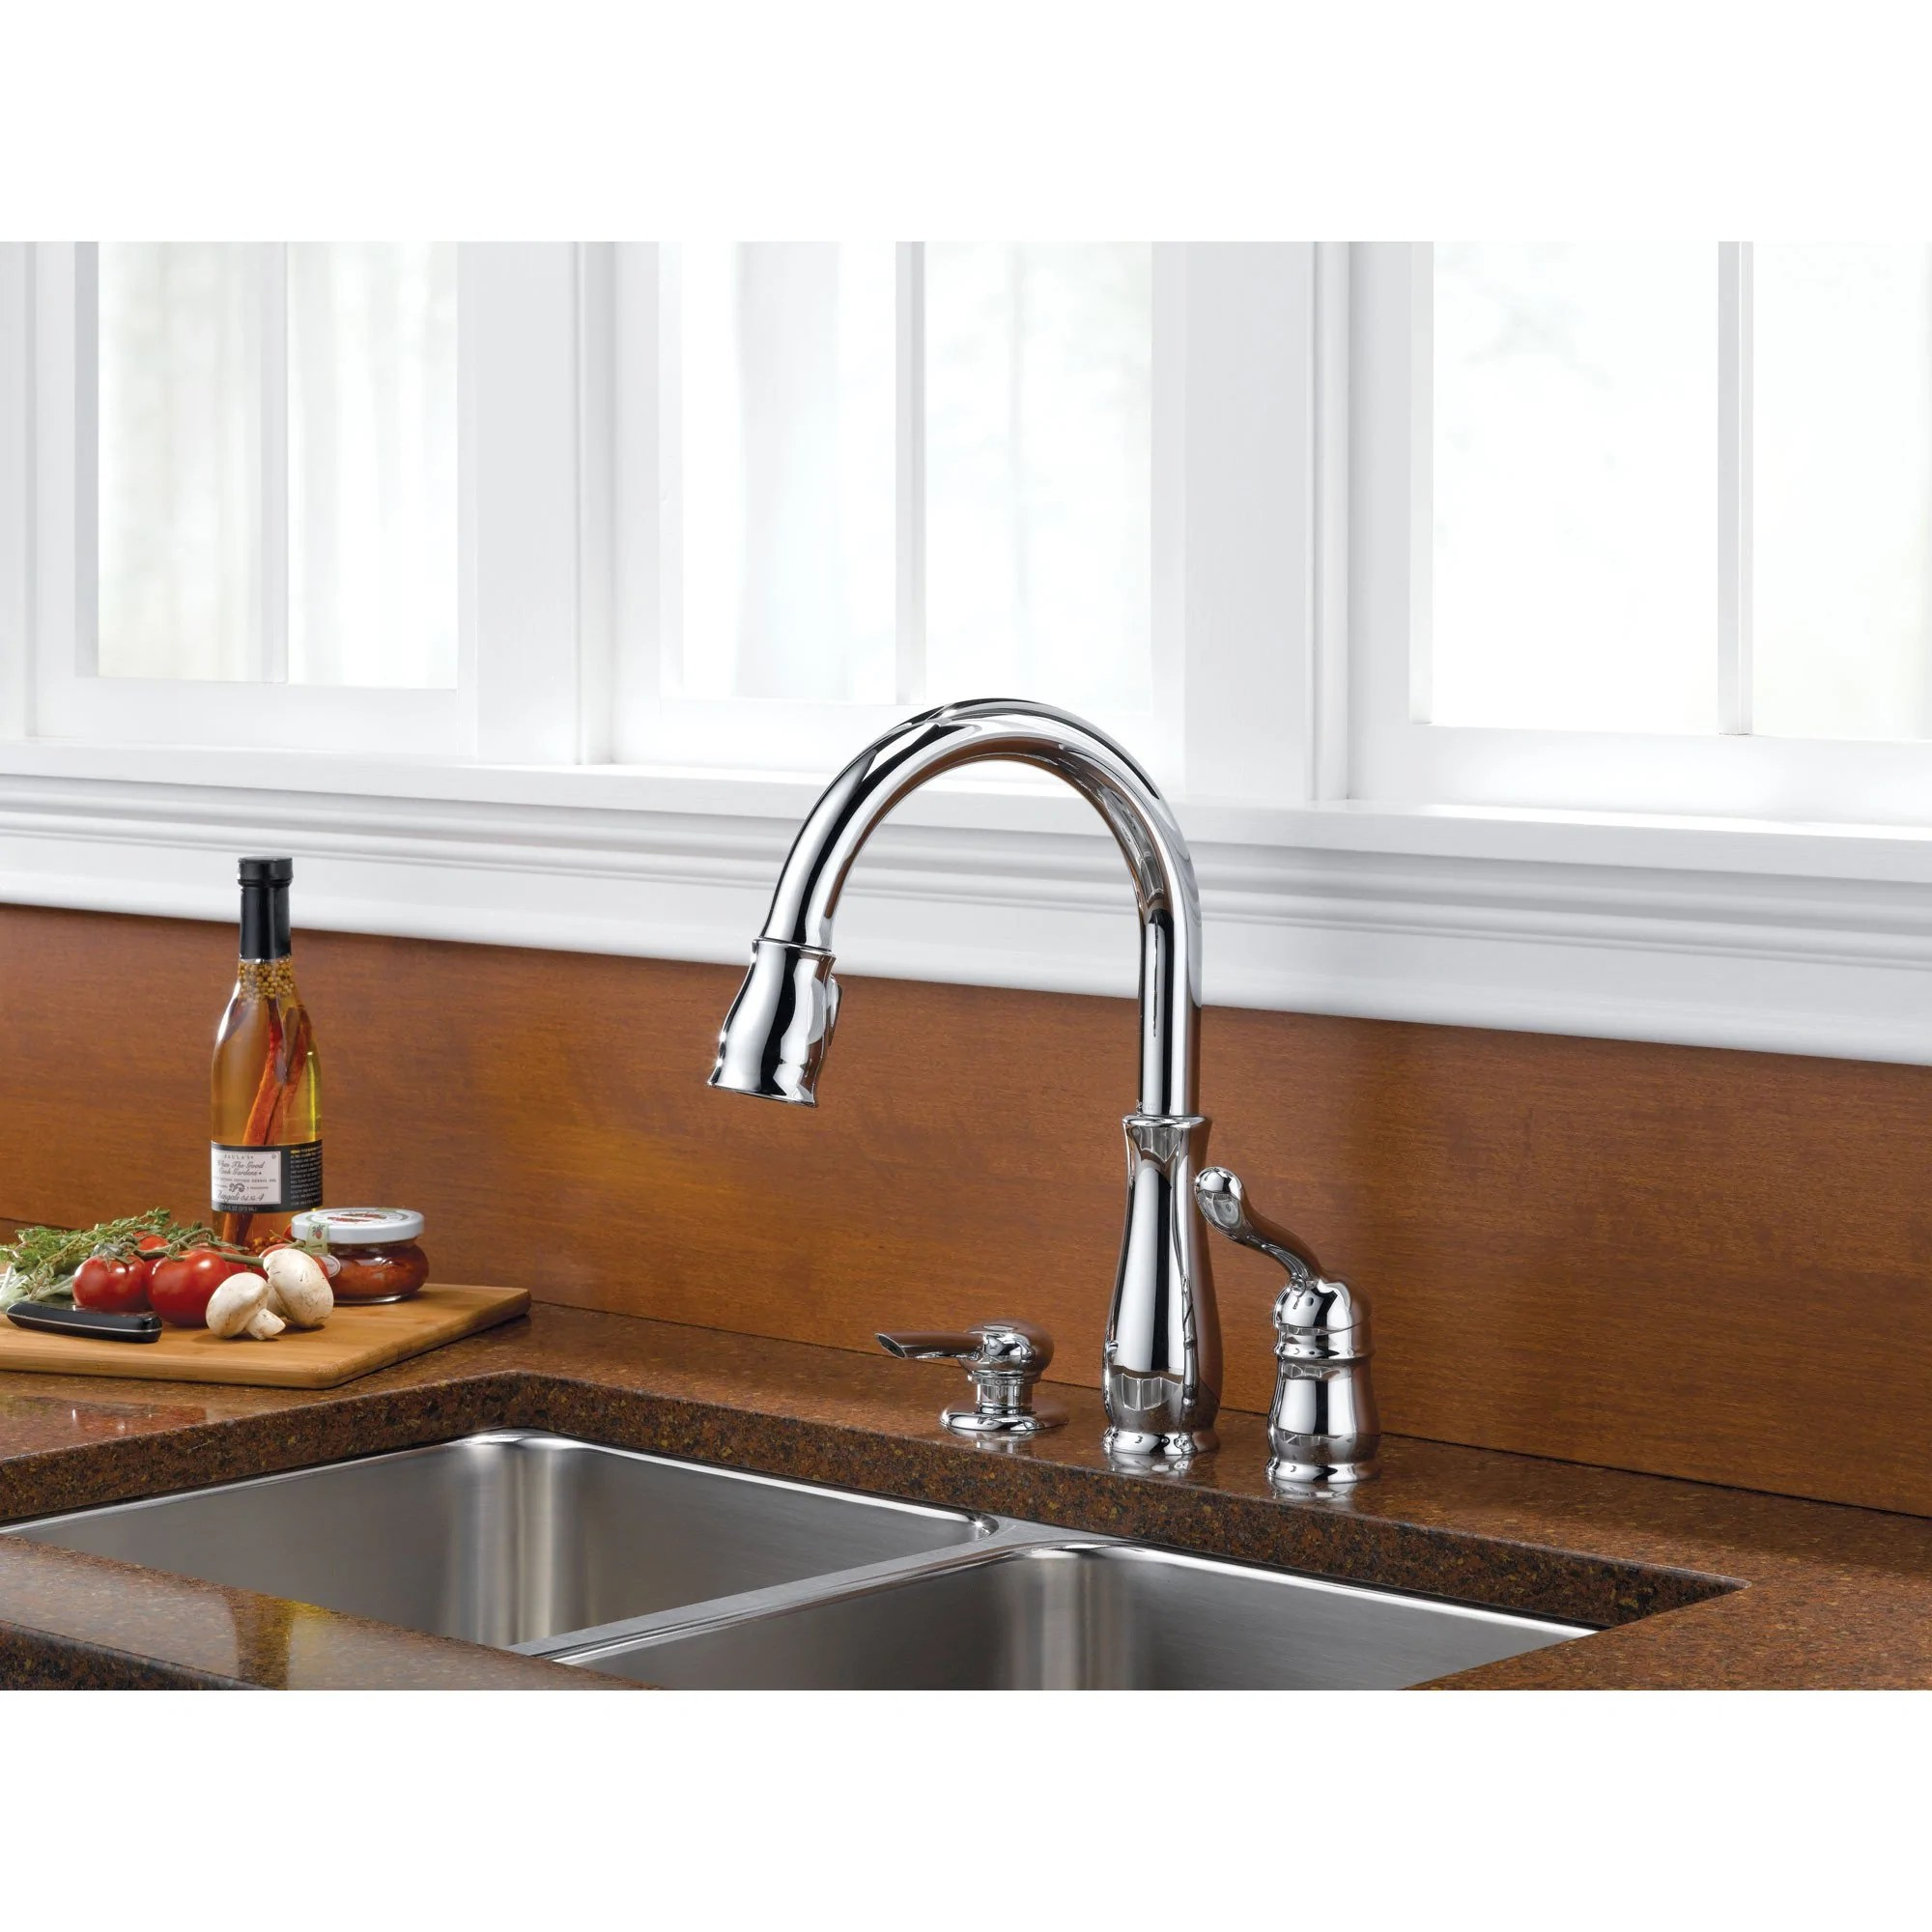 delta leland collection chrome finish single handle pull down kitchen sink faucet and soap dispenser package d026cr